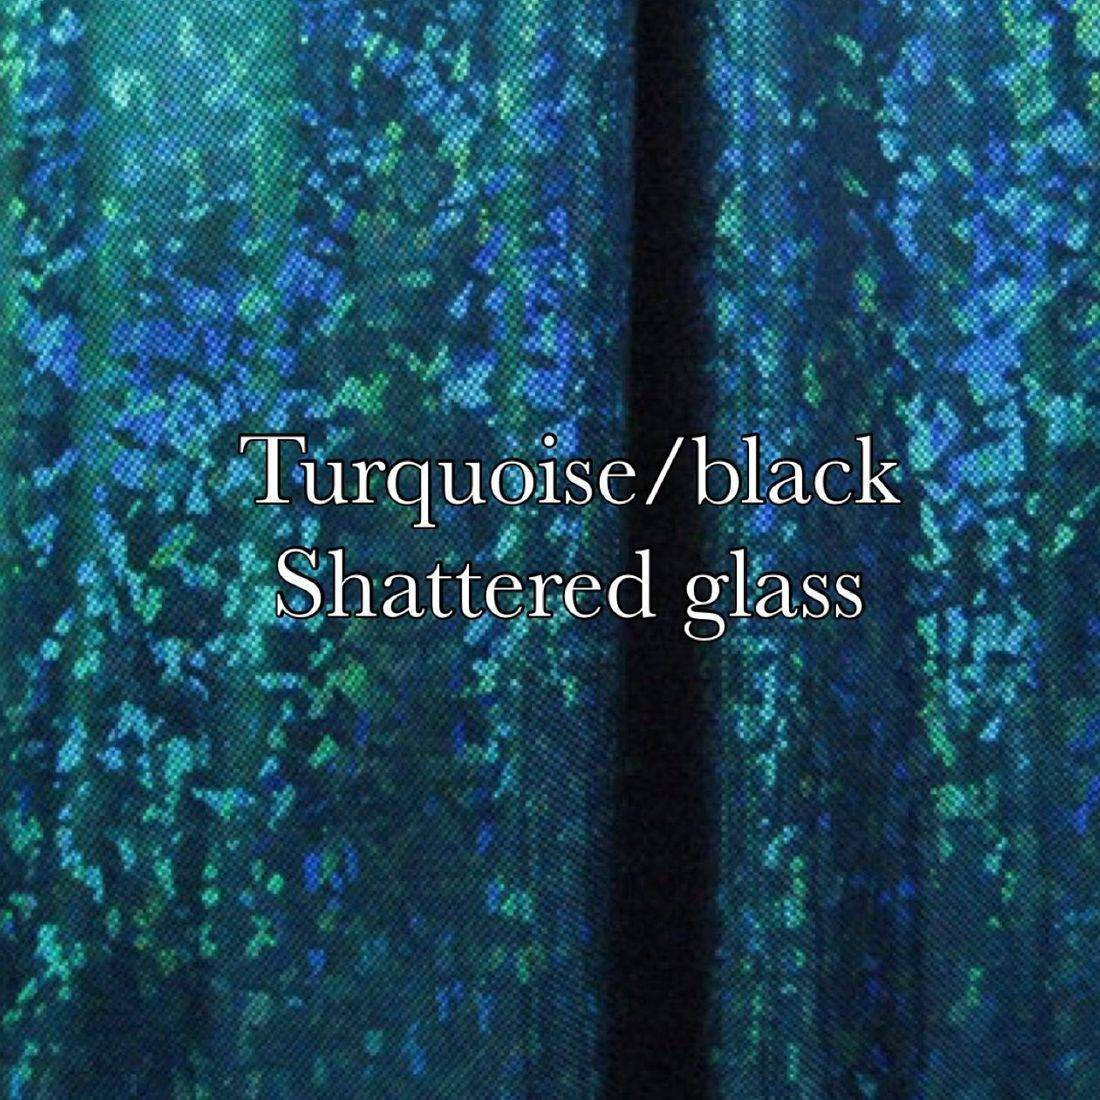 Turquoise black shatter glass